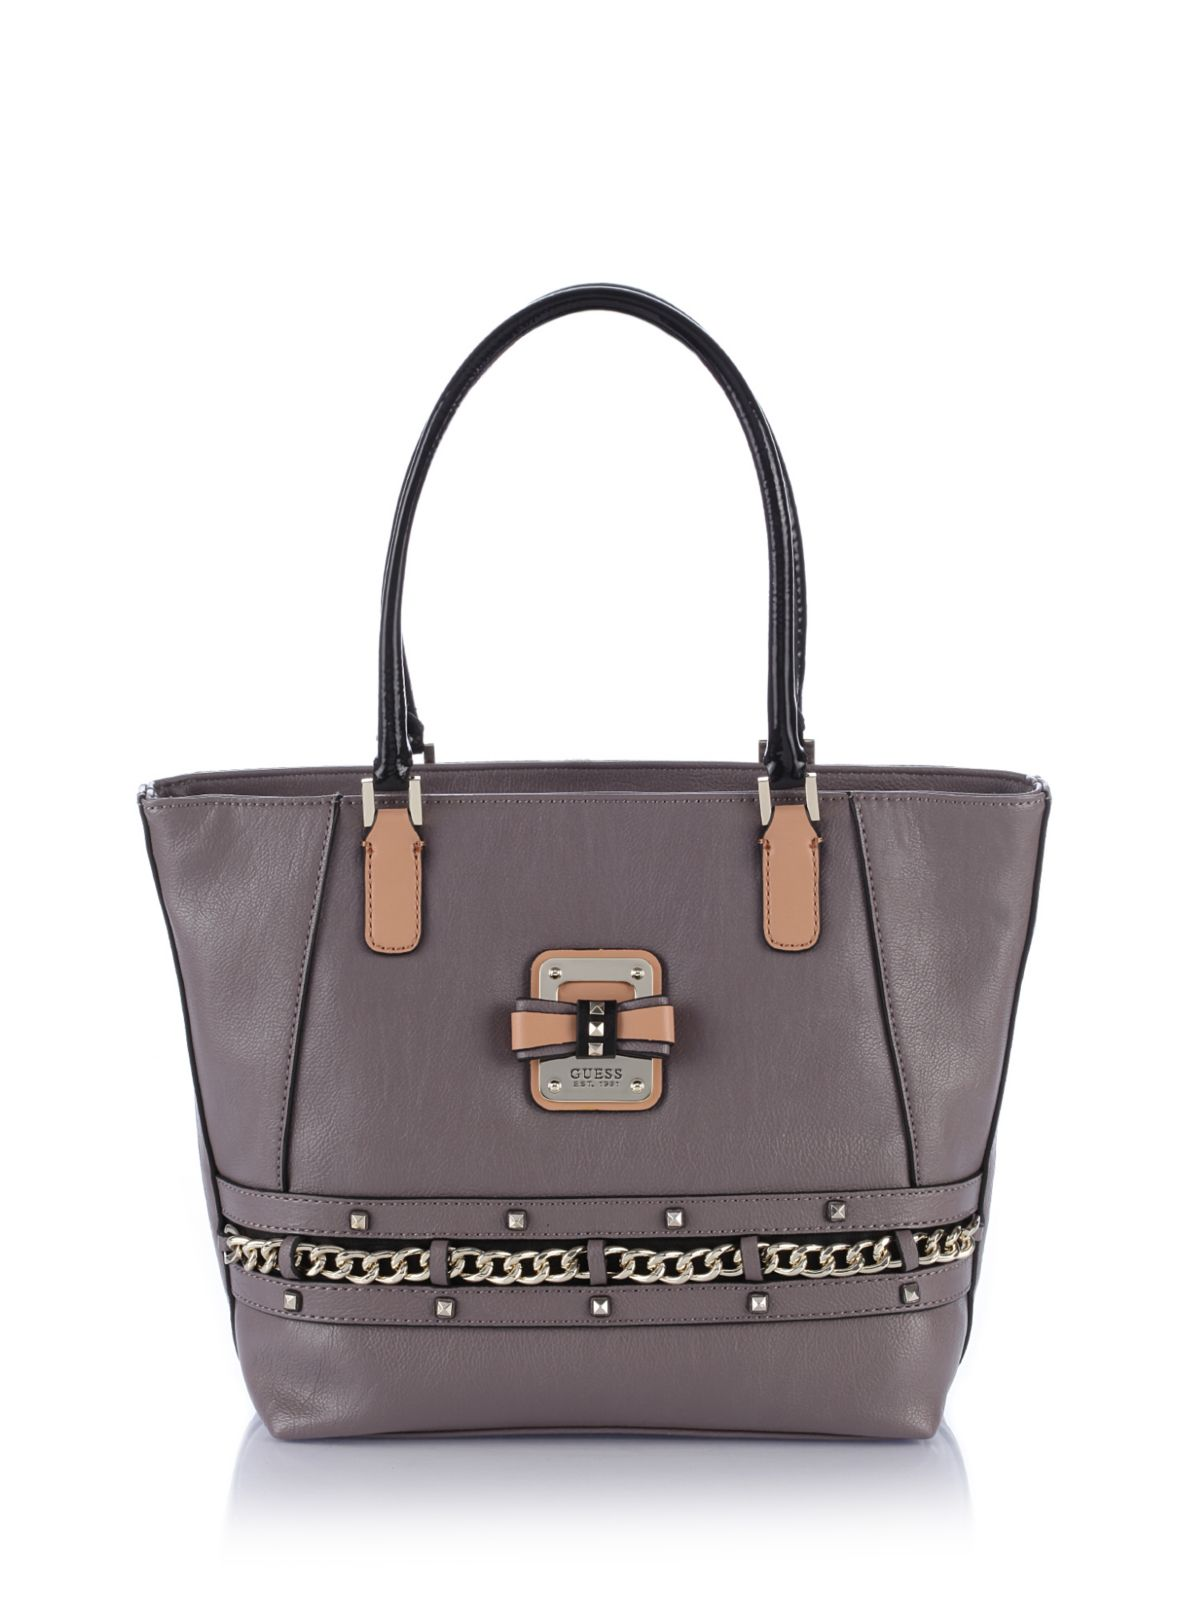 Guess Ellese Small Classic Tote Bag in Gray (Taupe)  55105d9207c8c